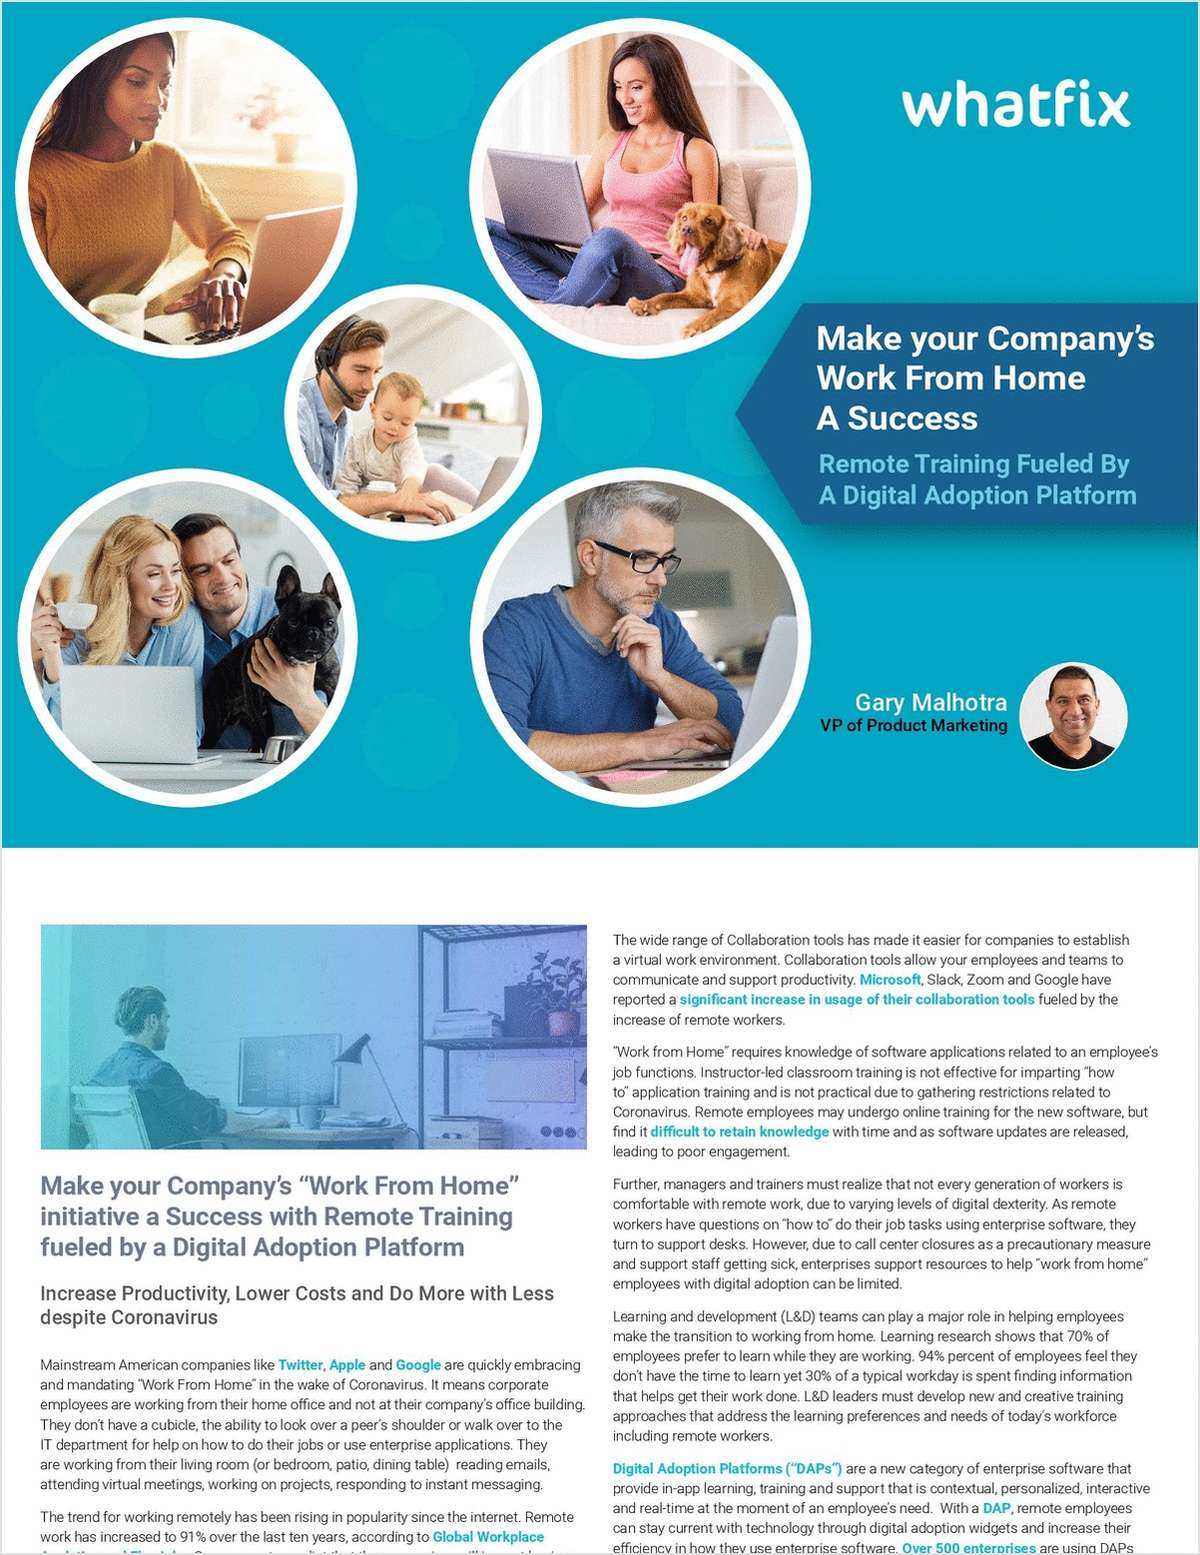 Achieve 'Work From Home' Success with Remote Training Powered by DAS